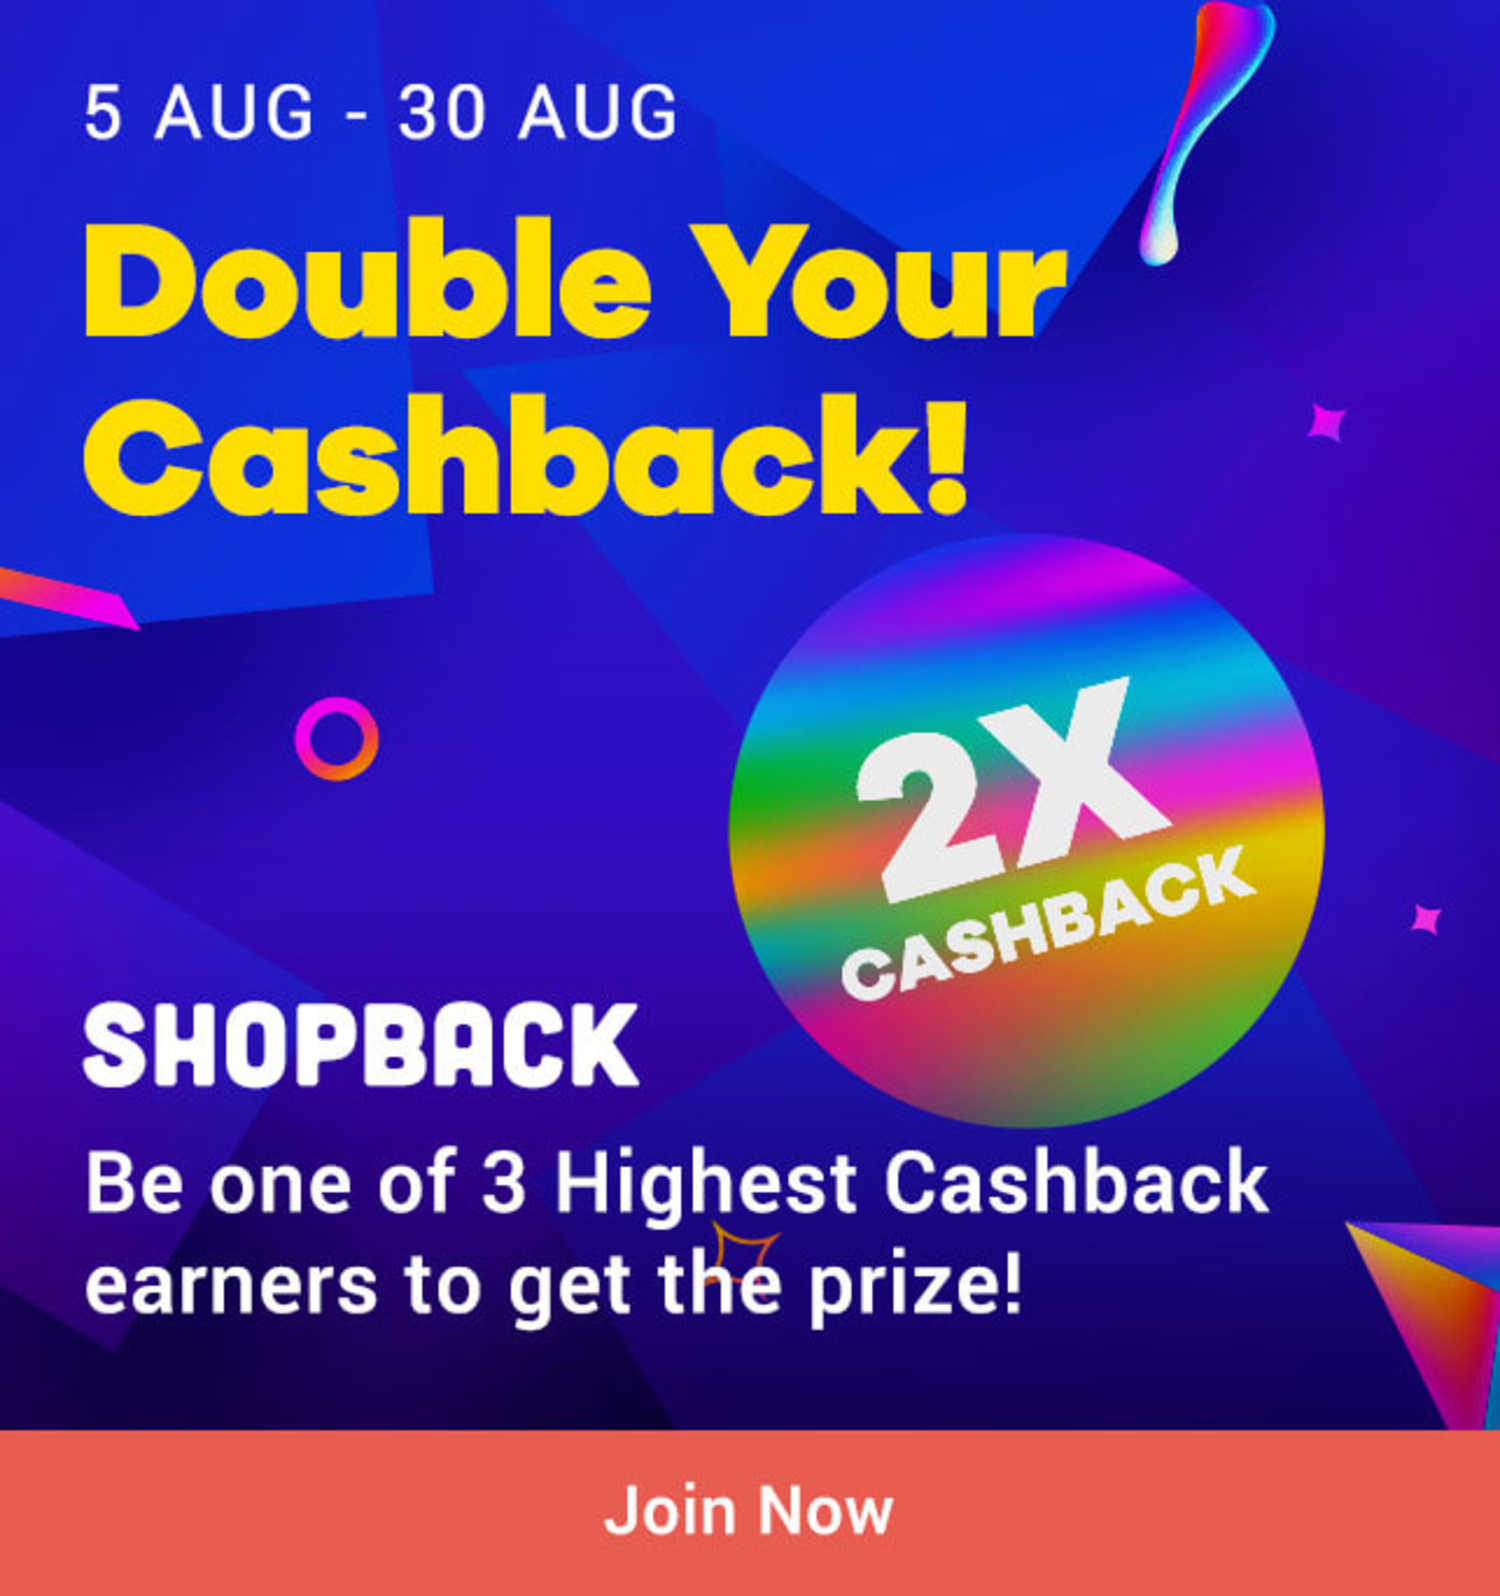 : 5 Aug - 30 Aug ShopBack Double Your Cashback! subline: Be one of 3 Highest Cashback earners to get the prize!